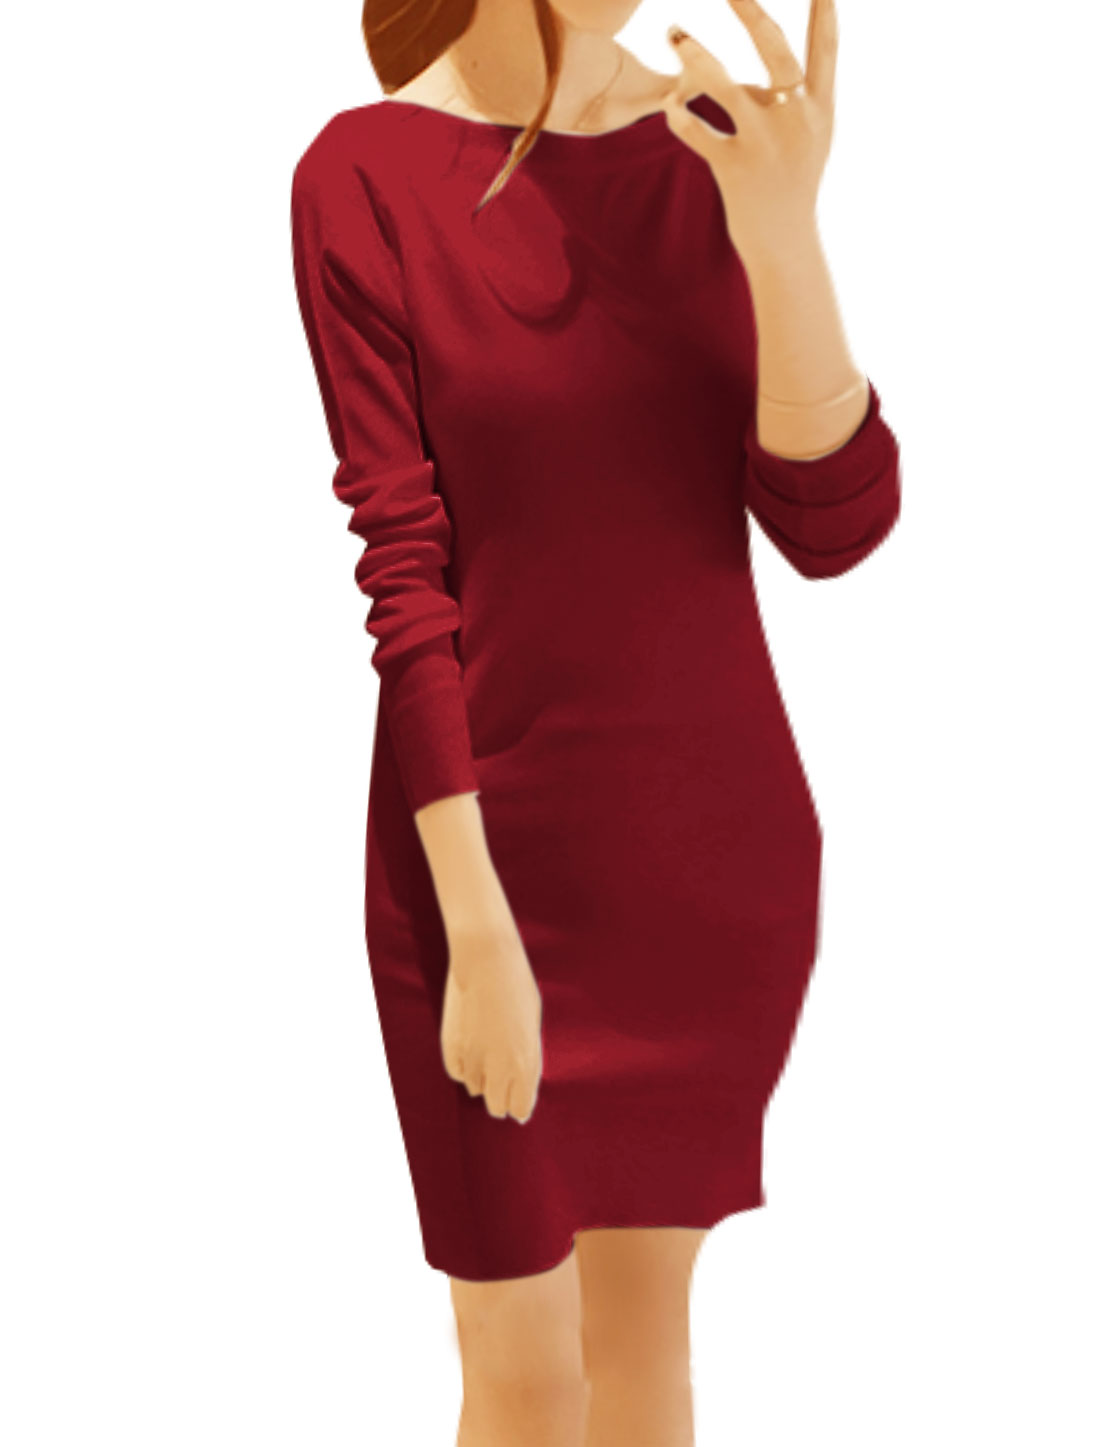 Women Boat Neck Long Sleeves Knitted Mini Sheath Dress Red XS